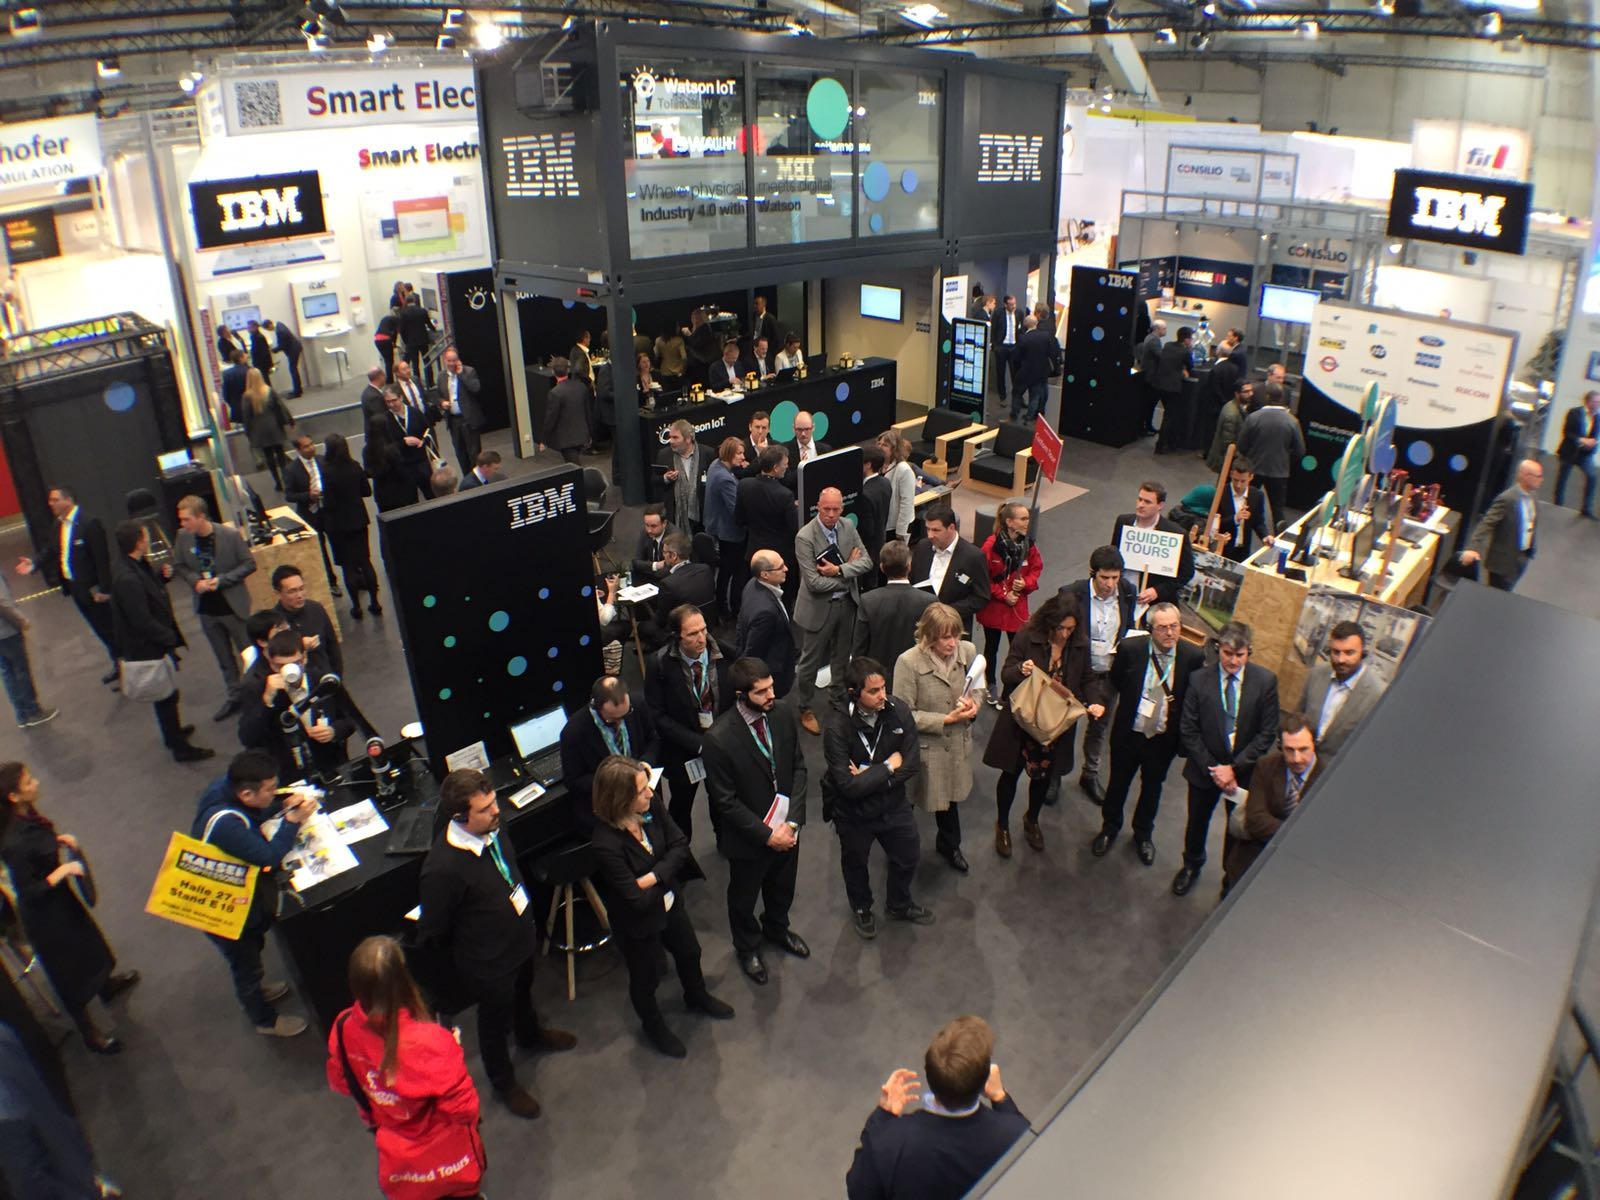 An aerial view of visitors to the Digital Twin demonstration at IBM's Hannover Messe booth